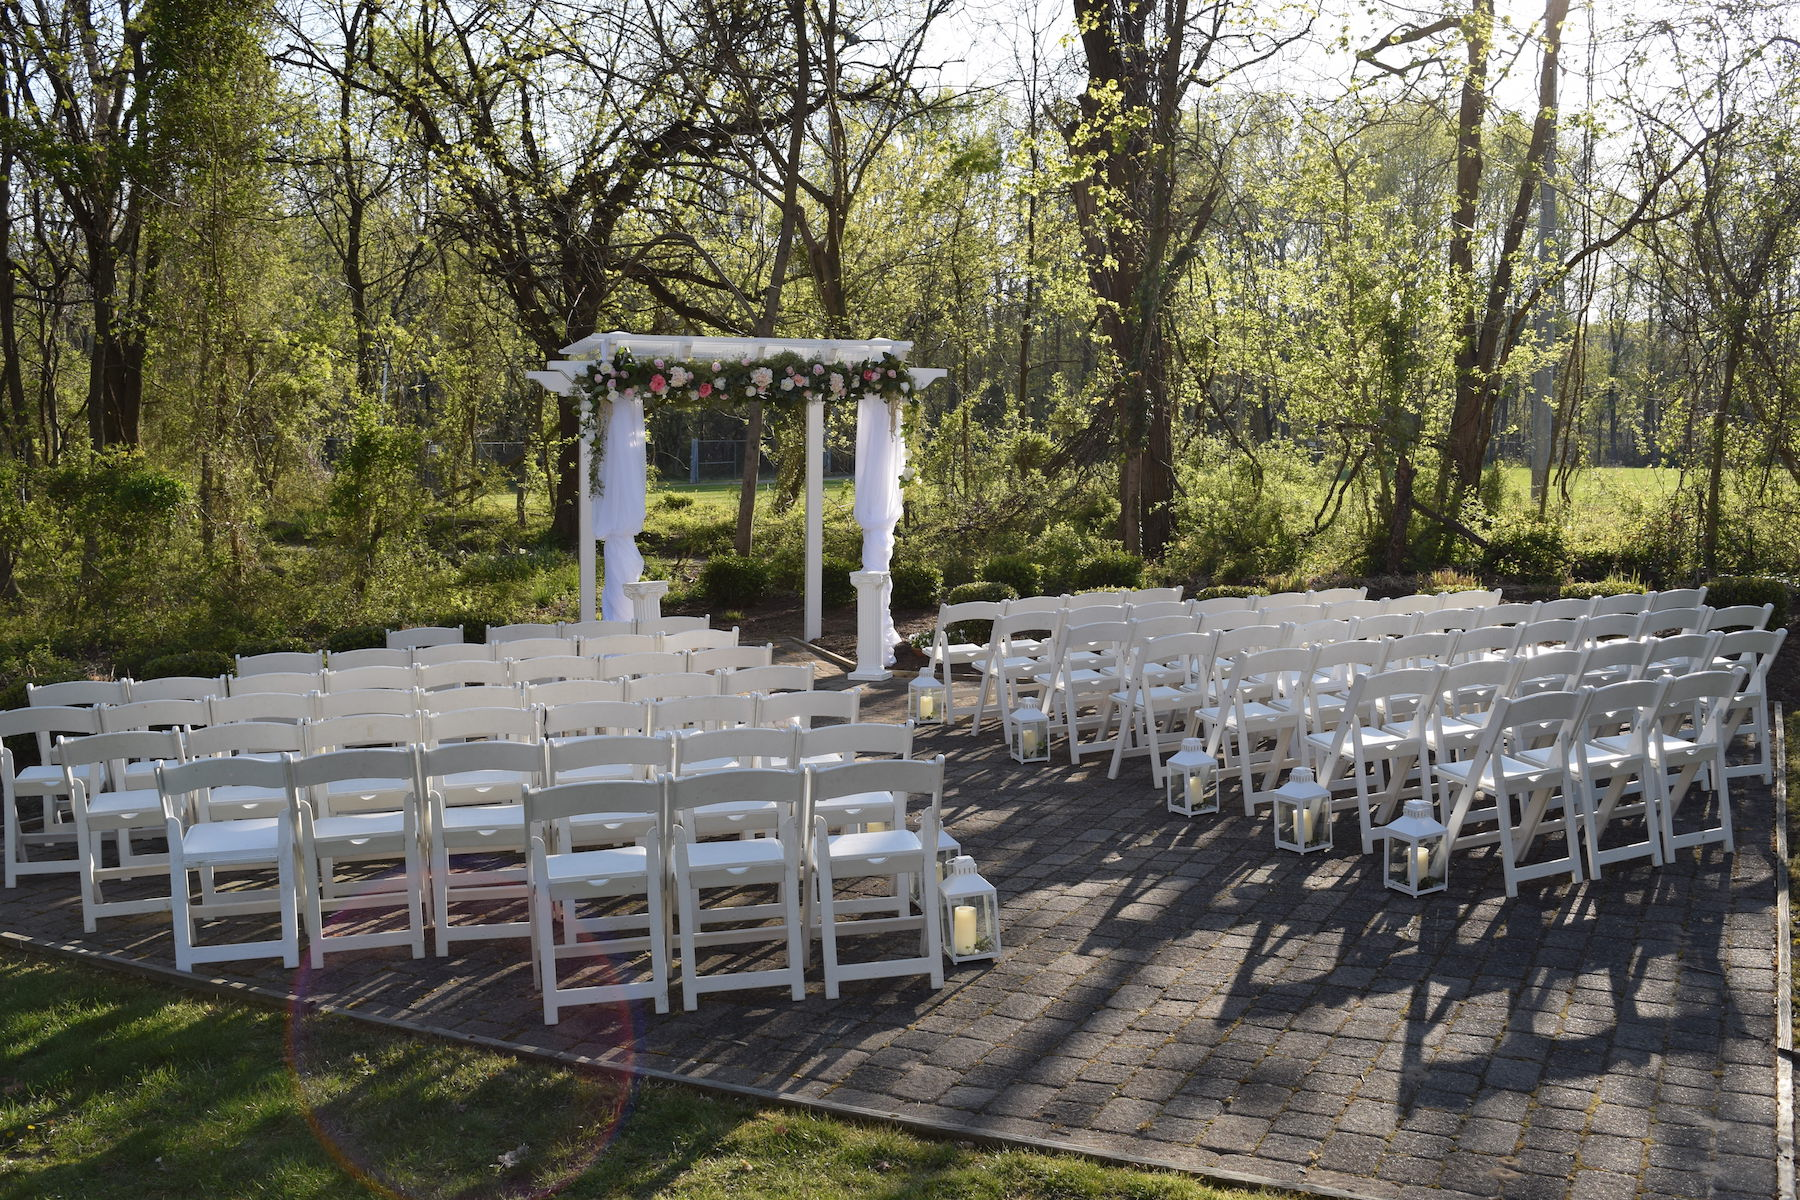 On April 15th 2016 Porsche Ronnie Joined Hands In Marriage At Our Historic Savage Mill Manor Located Maryland The Ceremony Was Held Outside